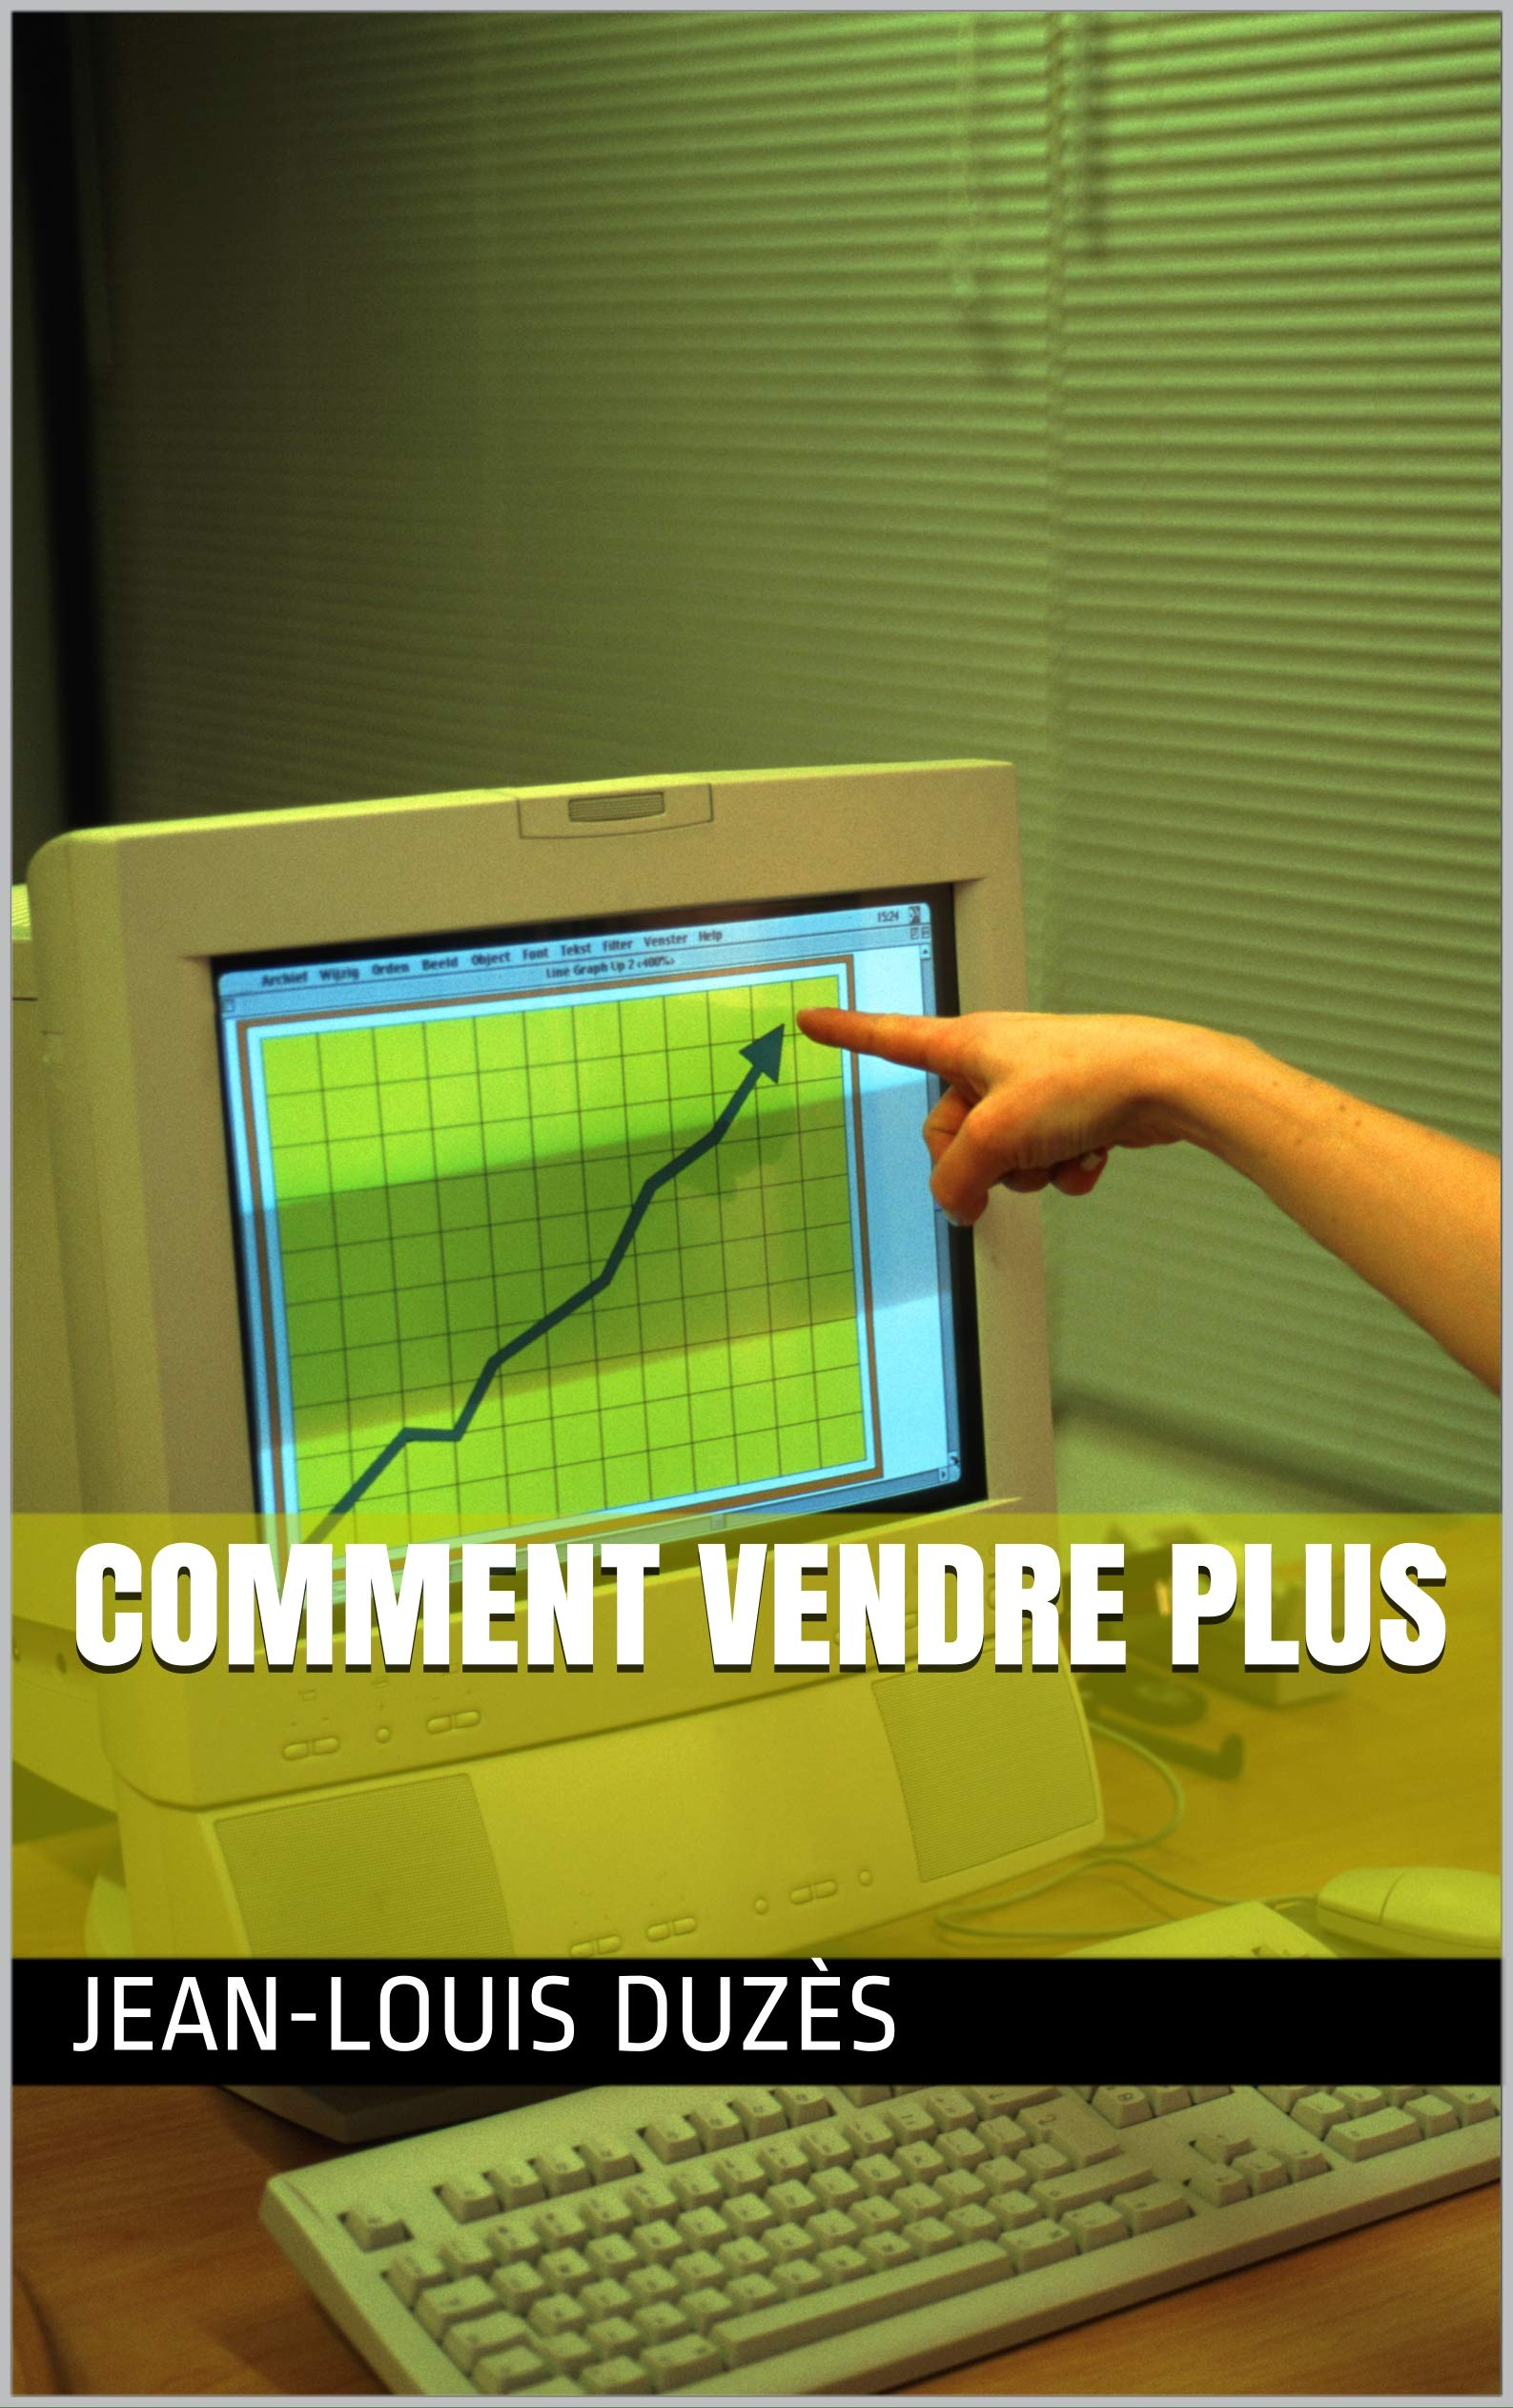 comment vendre plus (French Edition)